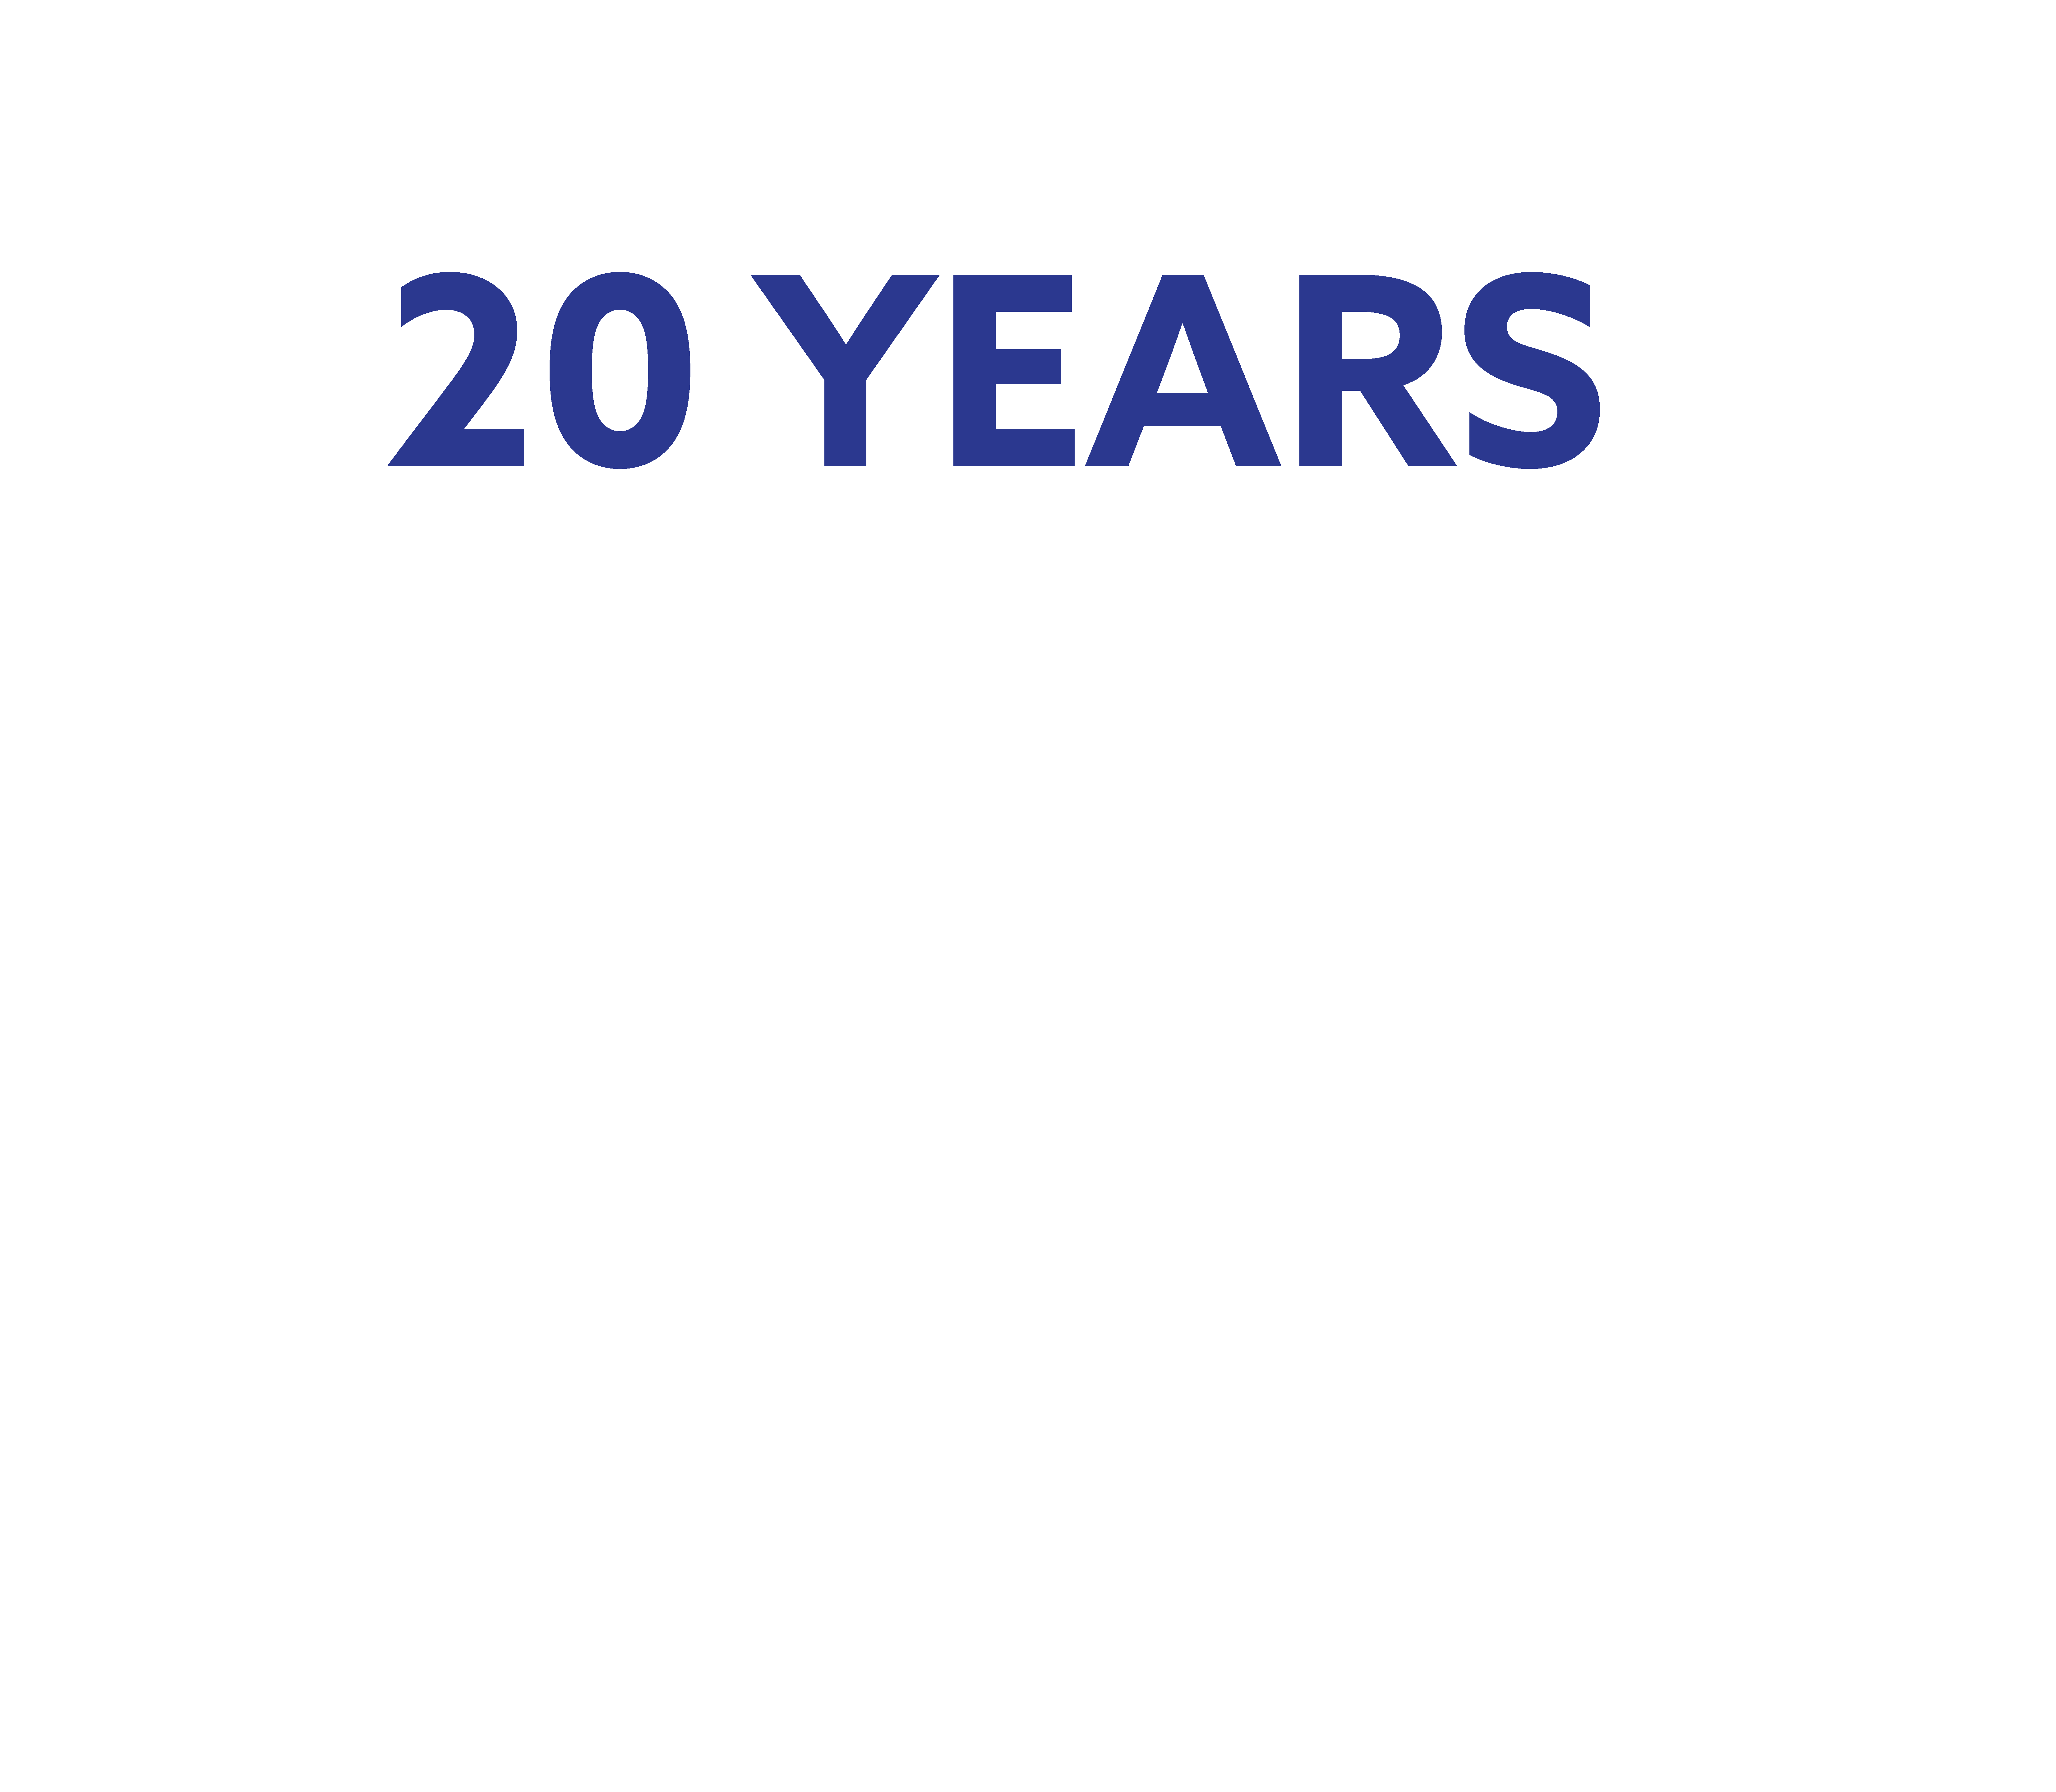 20 years experience in helping children and young people lose weight